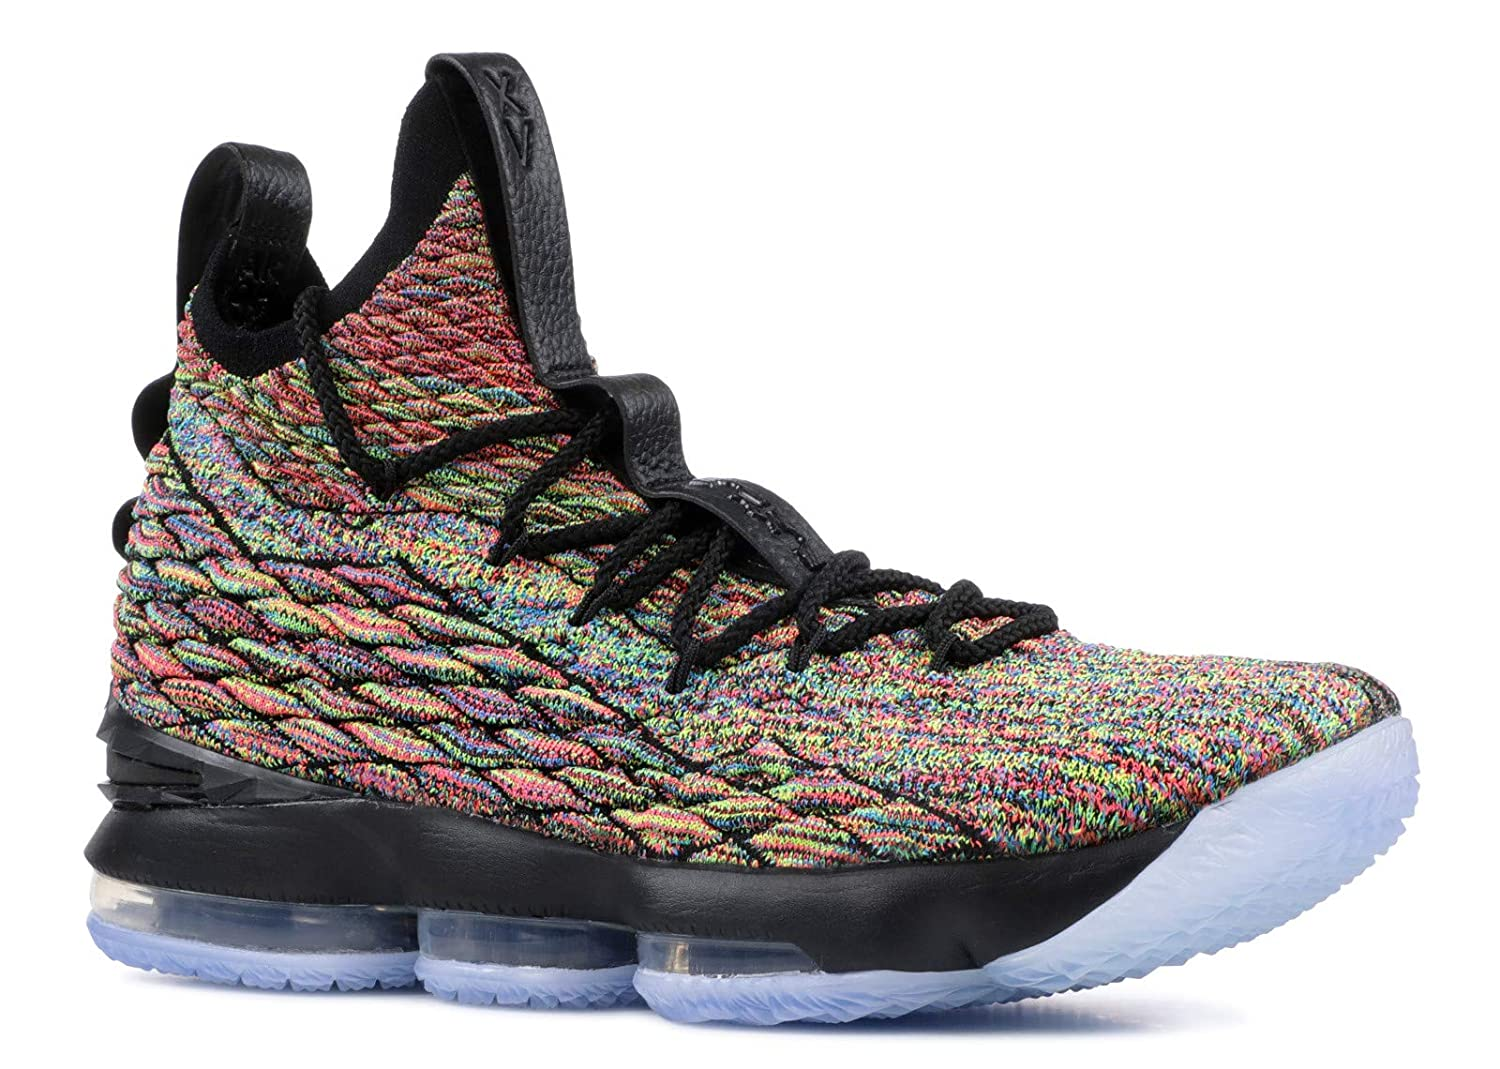 98bae6703e72 Lebron 15 Size 105 in 2018 Athletic Shoes t Shoes